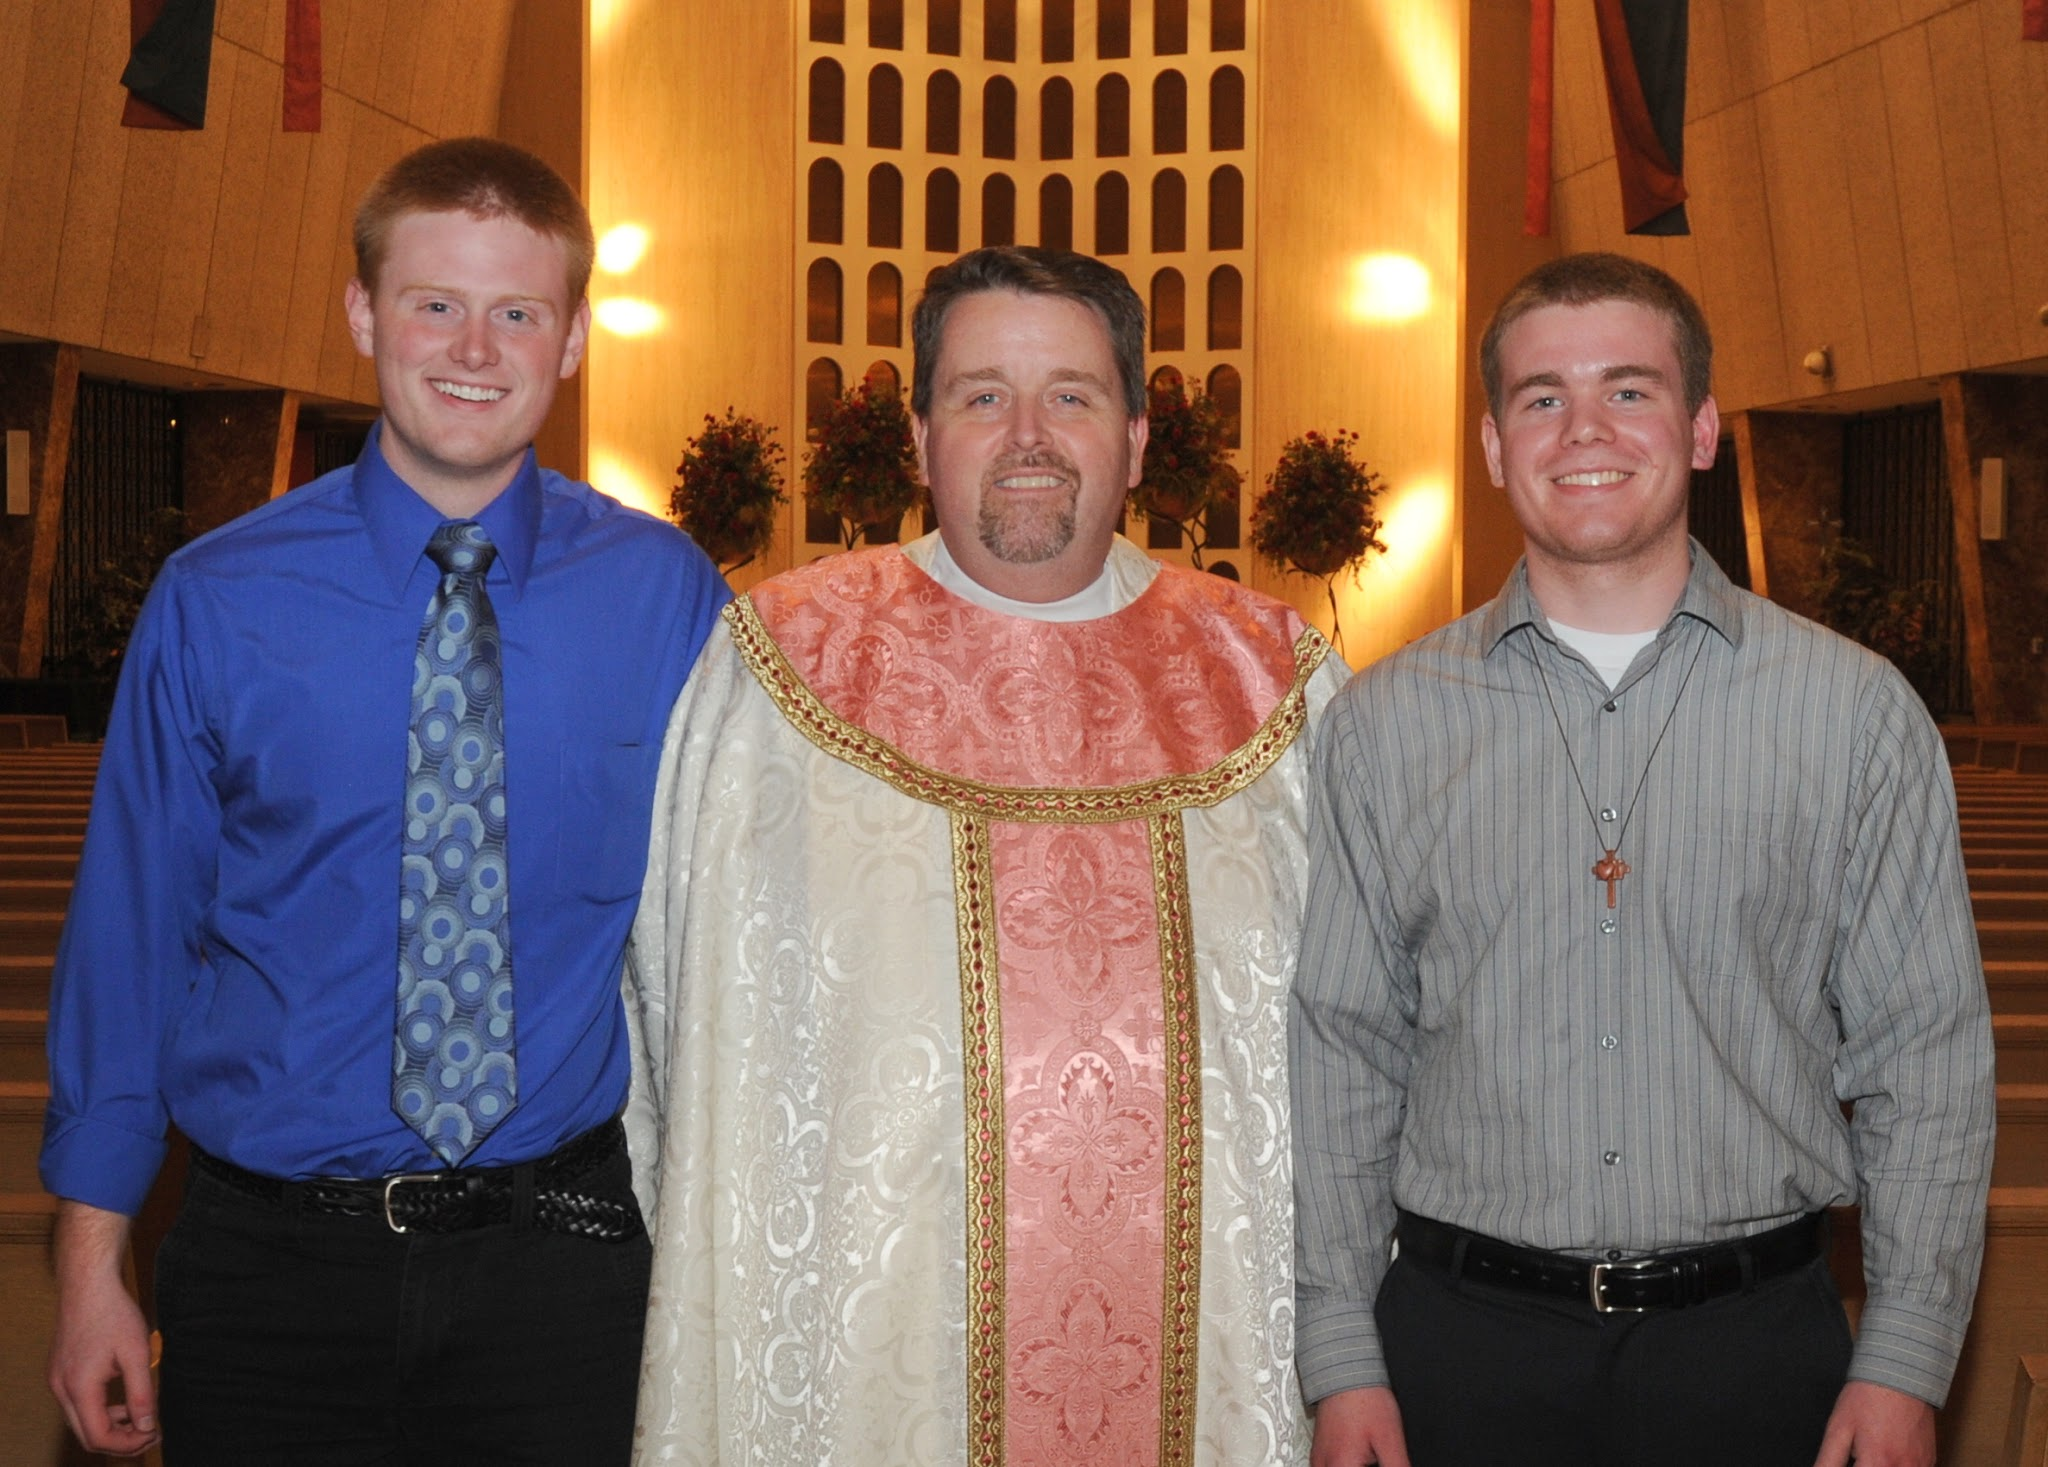 Jack (left) met Fr. Tom McCarthy, OSAwho helped him discern his vocation to the Augustinians, also seen here with Jeff Raths